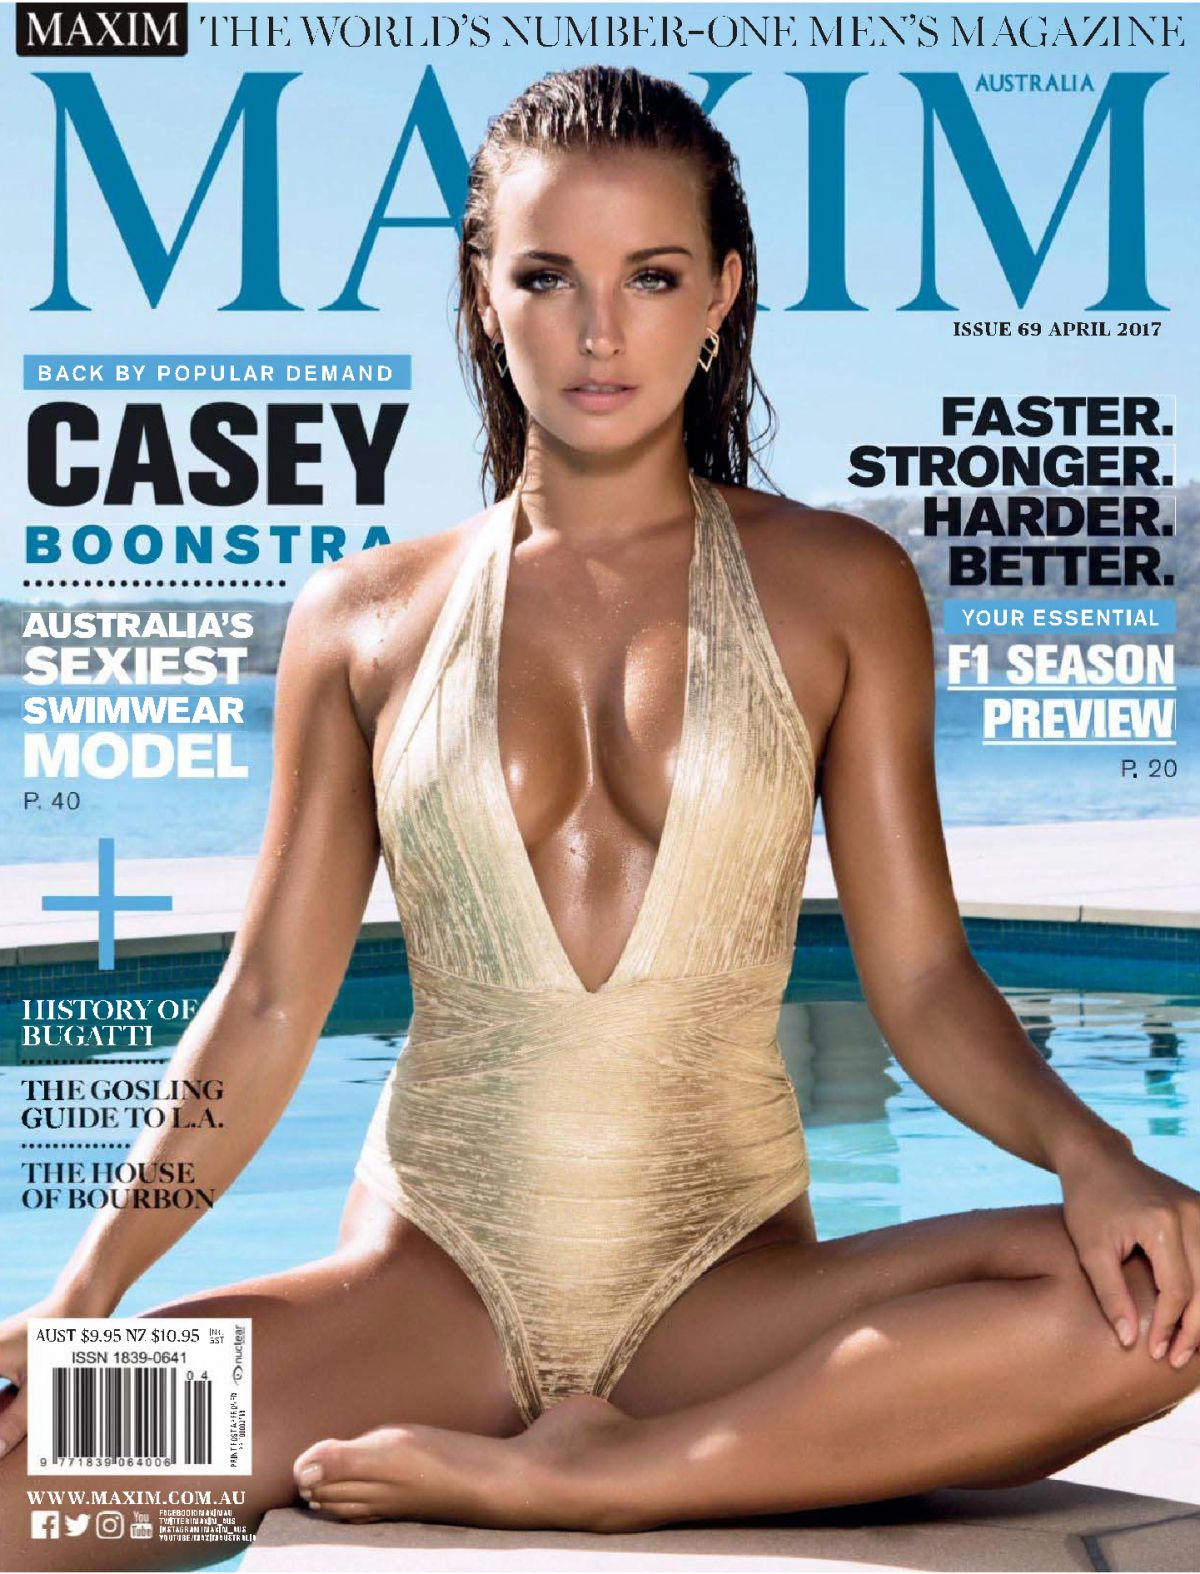 CASEY BOONSTRA in Maxim Magazine, Australia April 2017